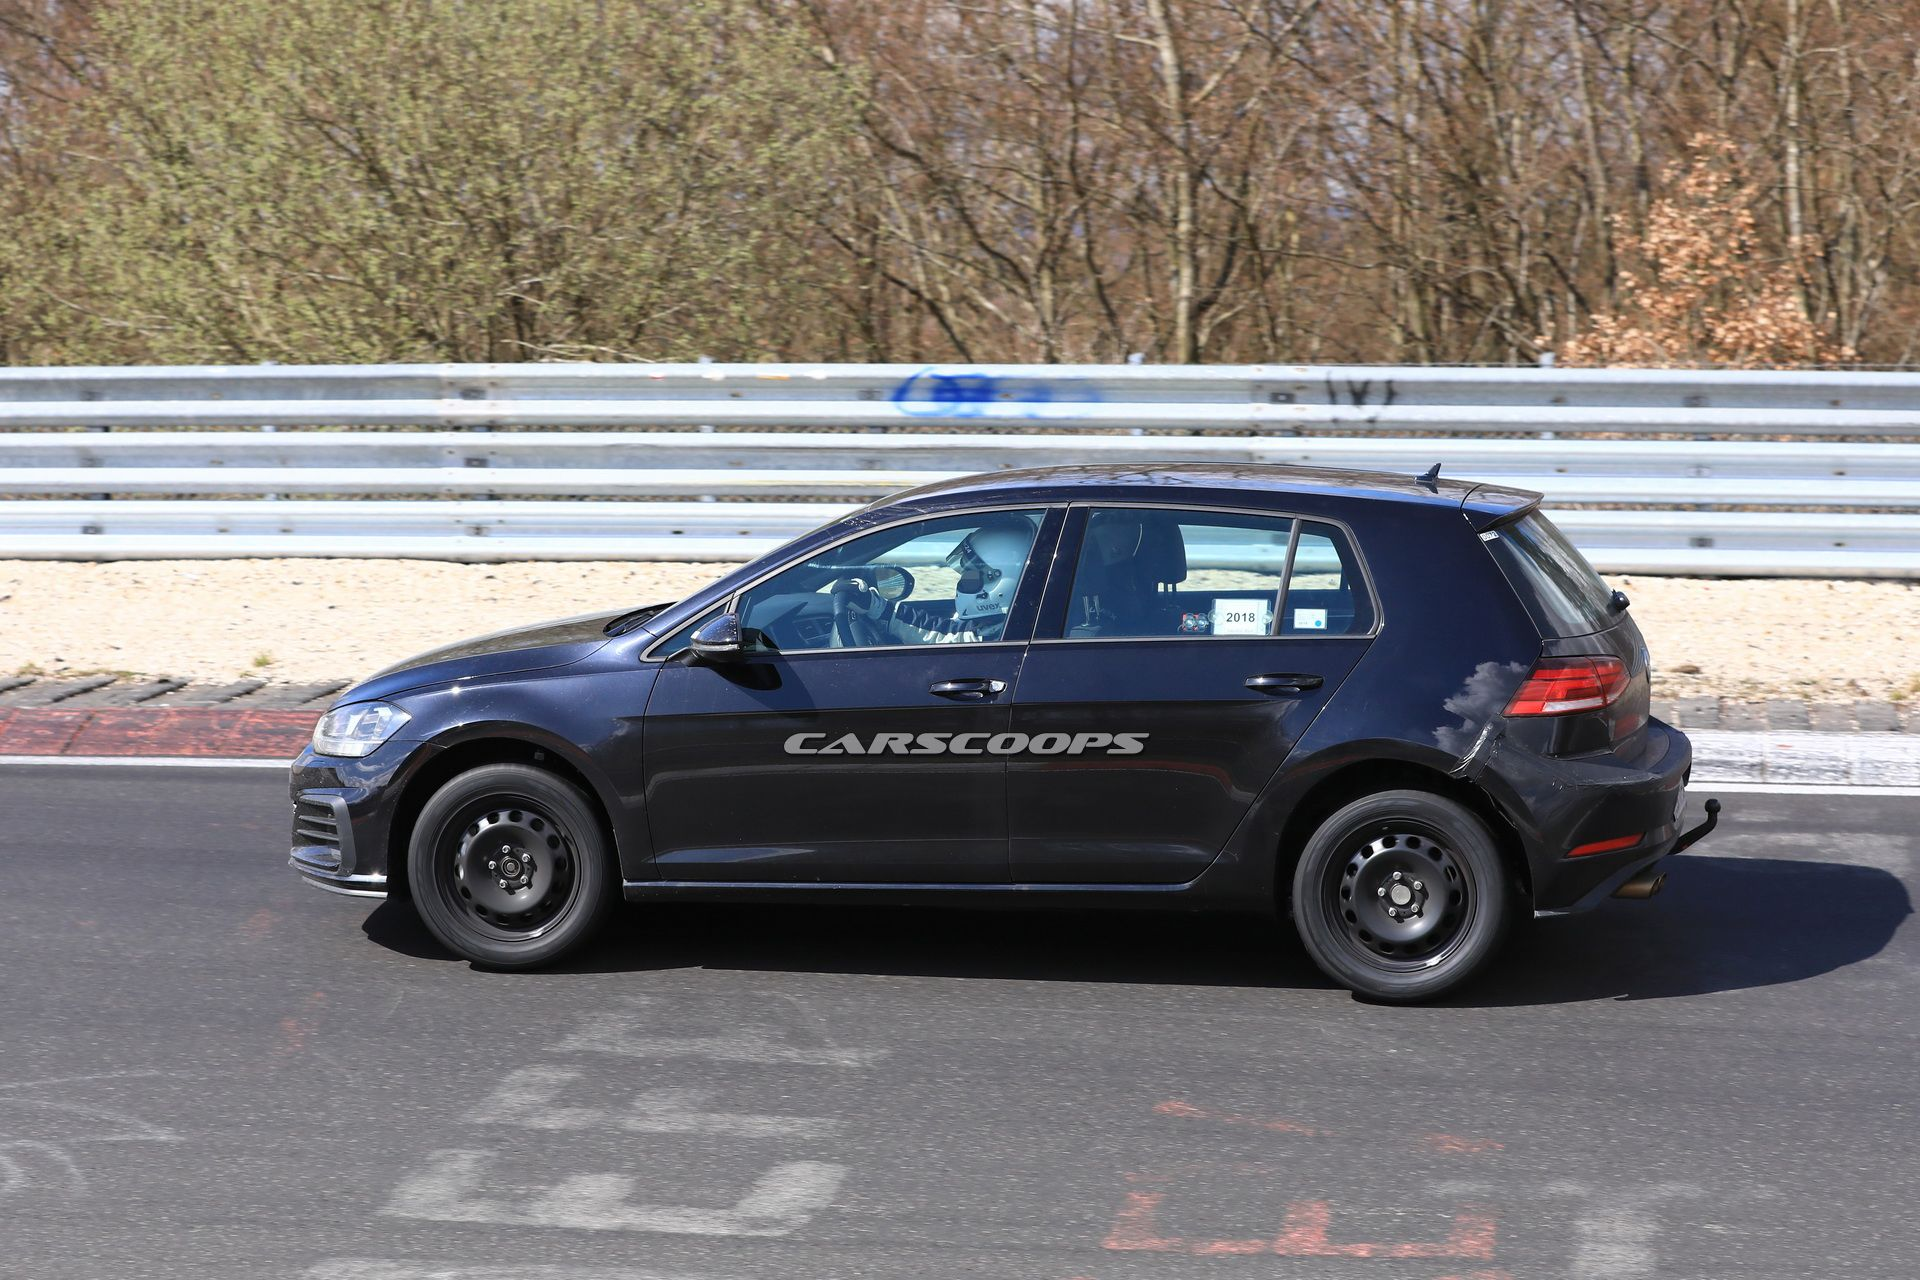 vw-golf-8-test-mule-spy-4-1.jpg